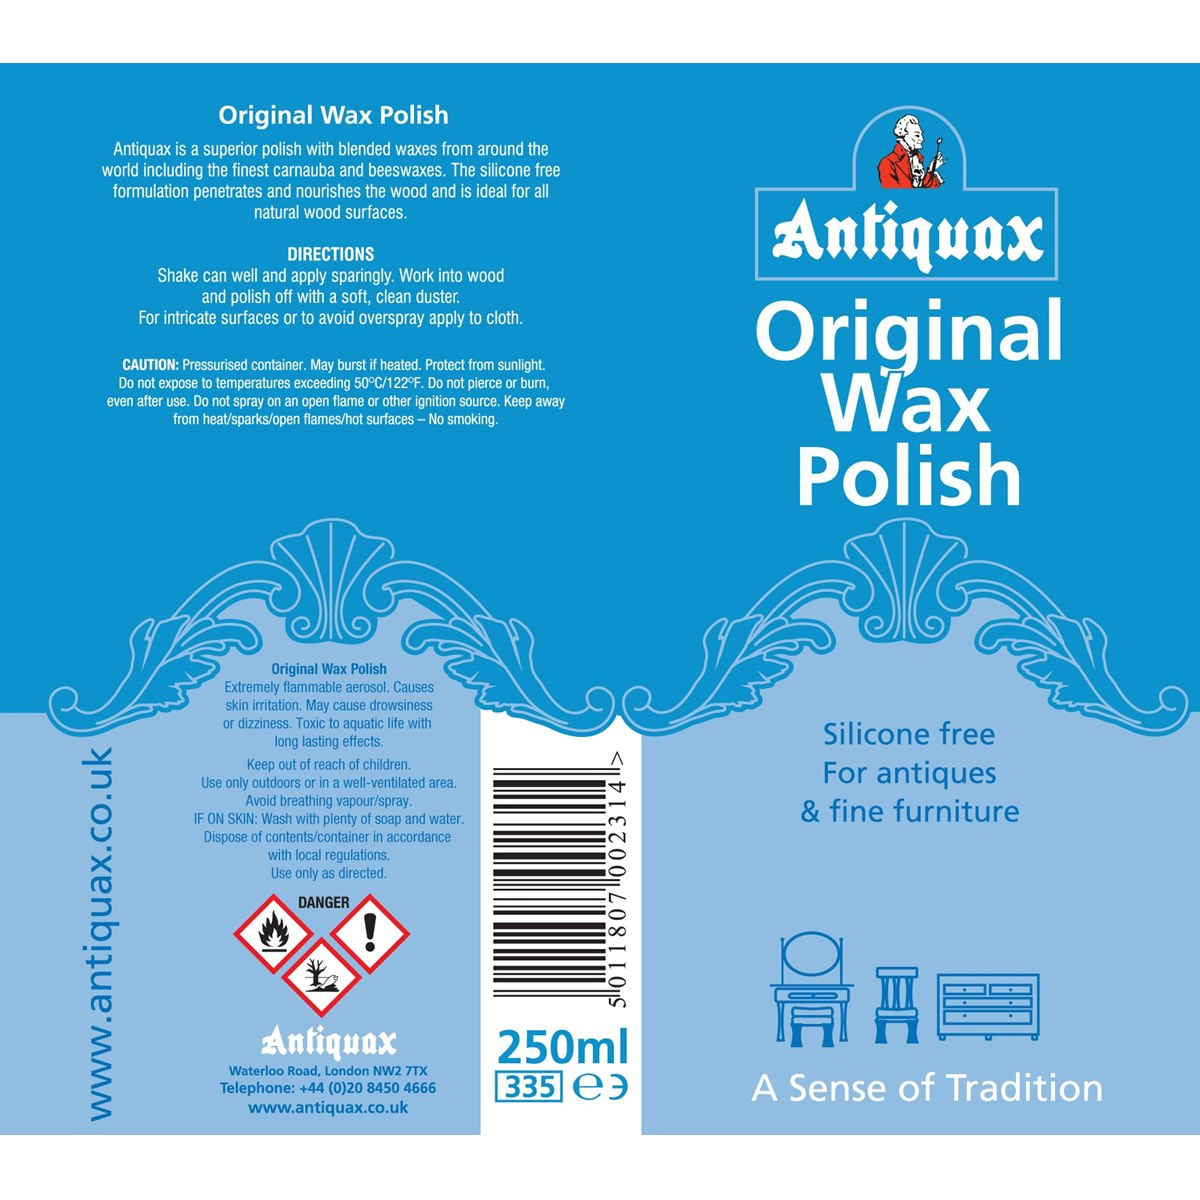 Where to buy Antiquax Original Wax Polish